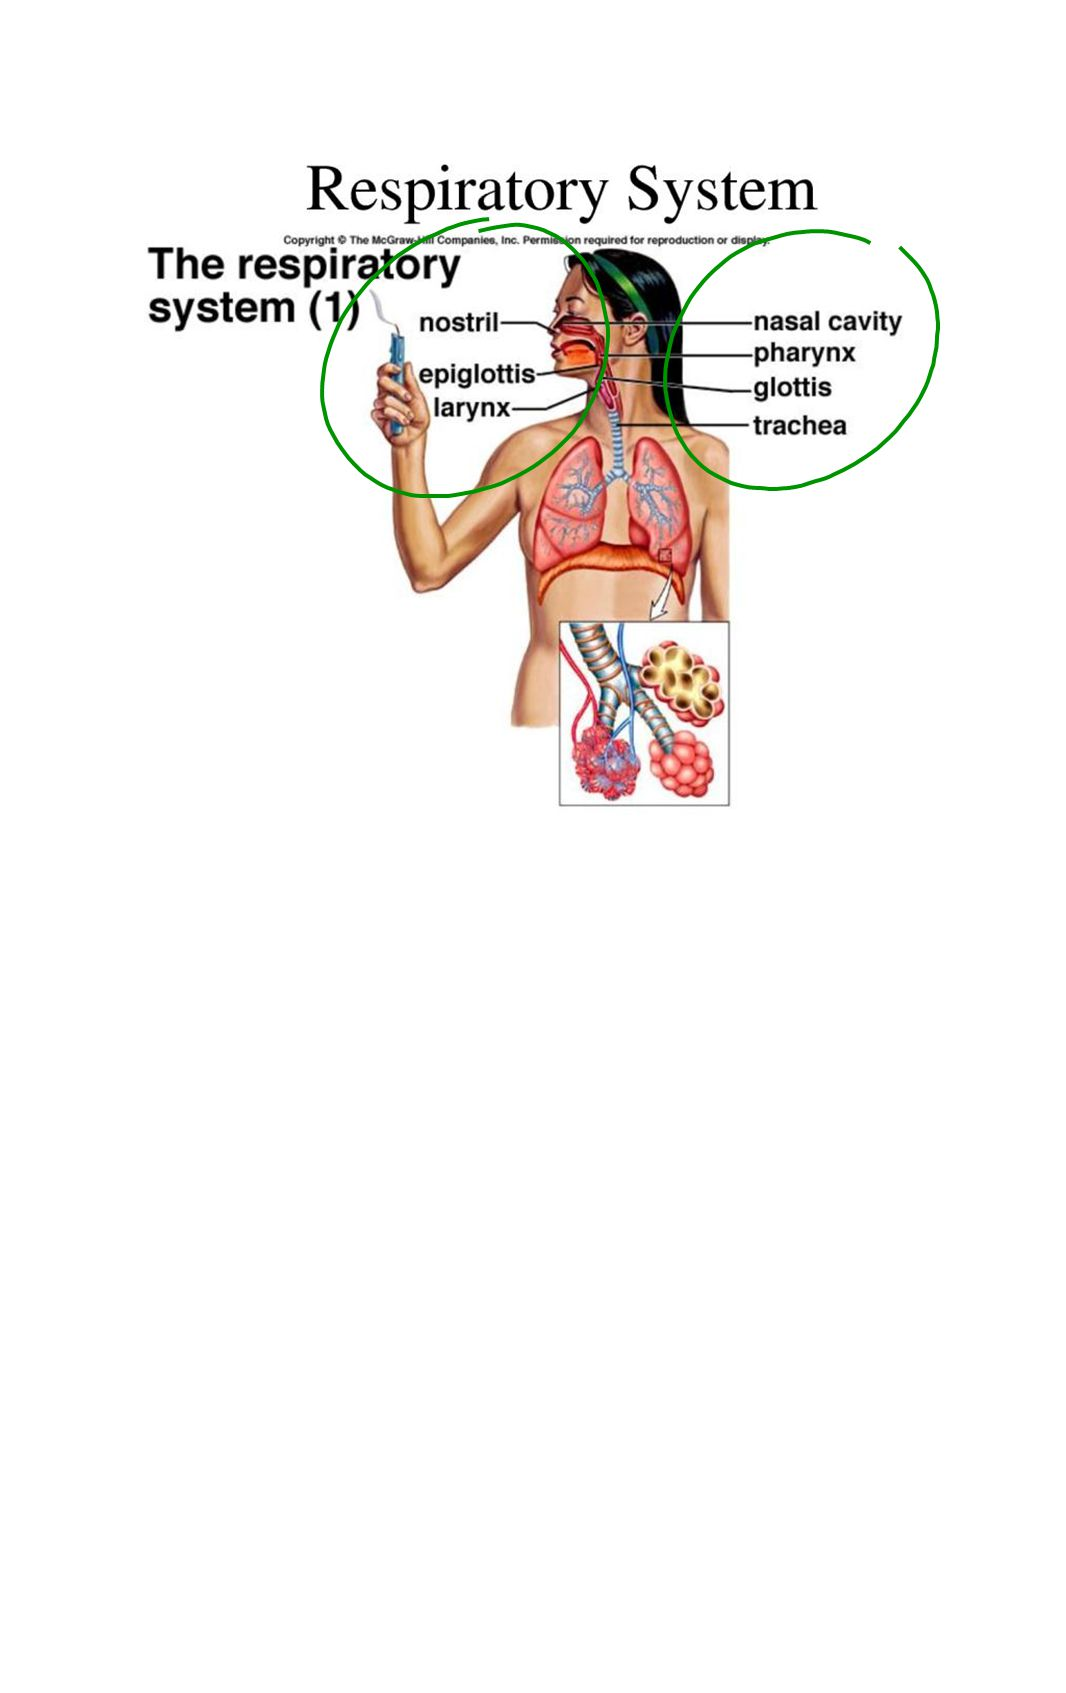 Respiratory System Functions supplies the body with oxygen and disposes of carbon dioxide filters inspired air produces sound contains receptors for smell rids the body of some excess water and heat helps regulate blood pH